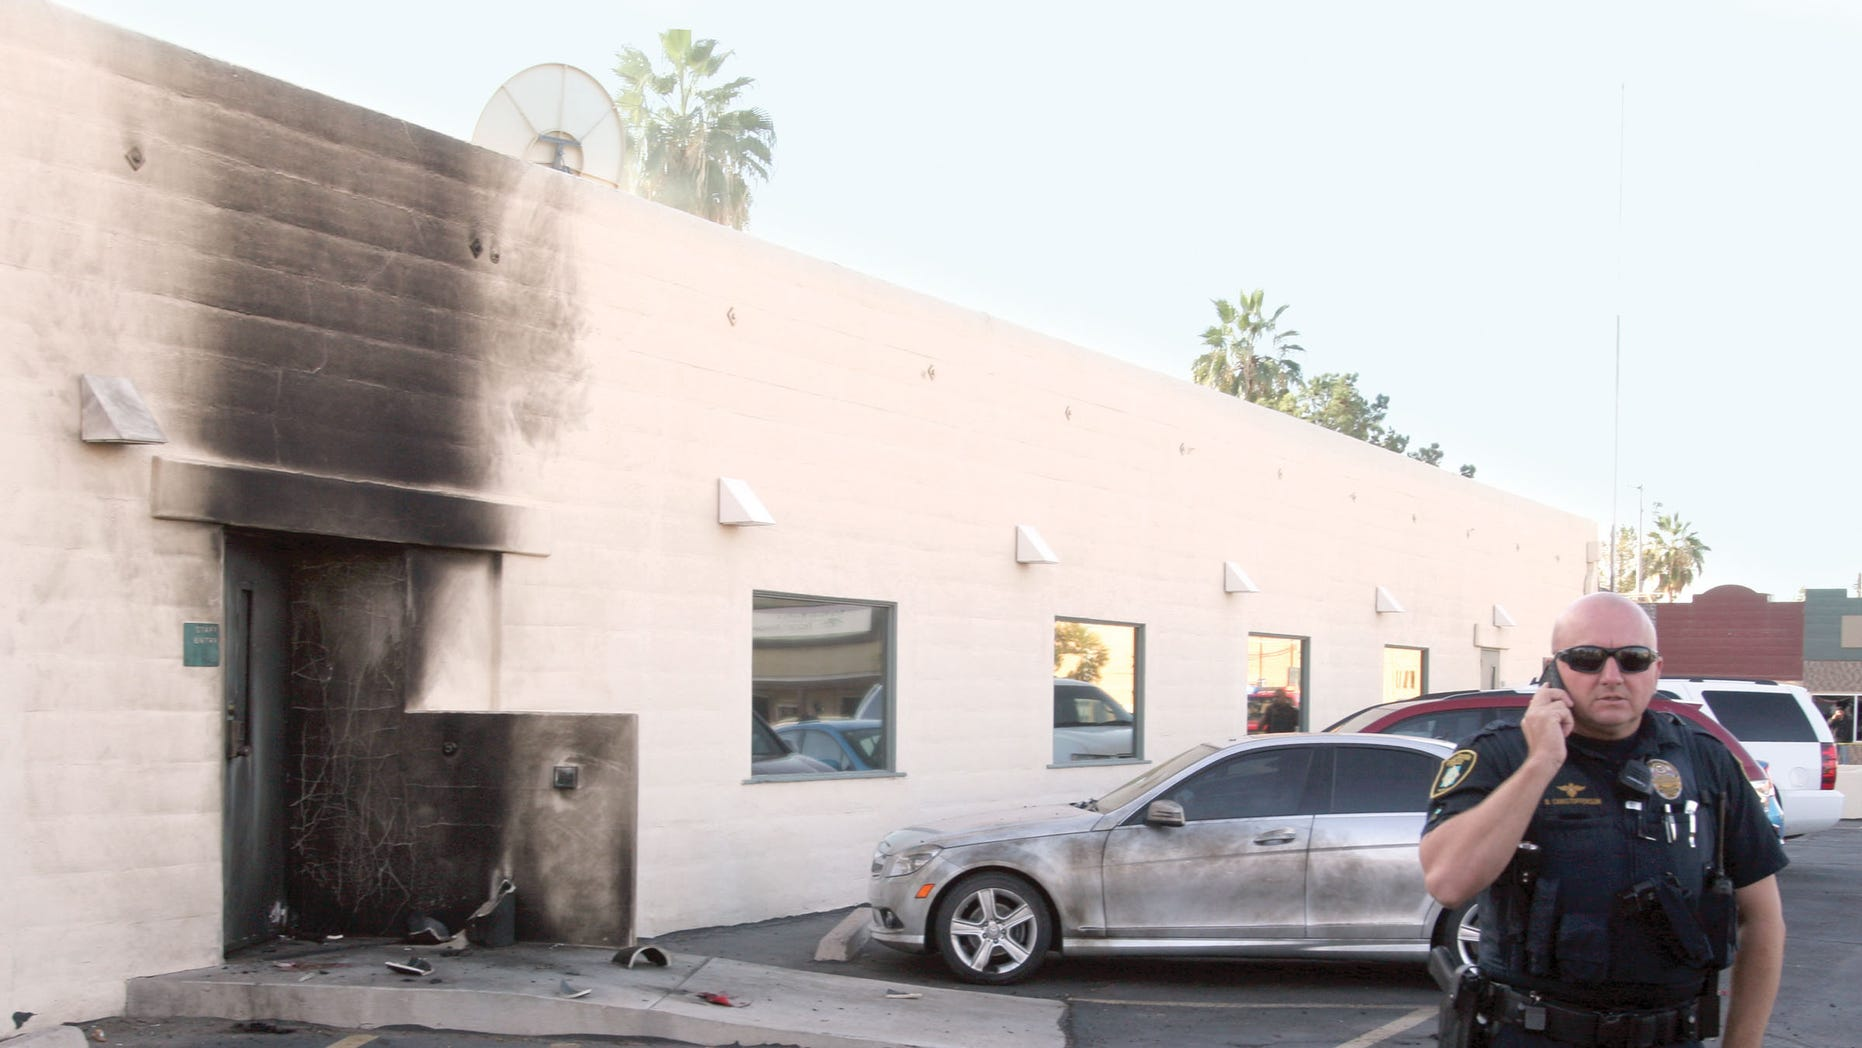 Nov. 30, 2012: Police investigate an apparent bomb explosion at the Social Security Administration office on Marshall Street in downtown Casa Grande, Ariz.